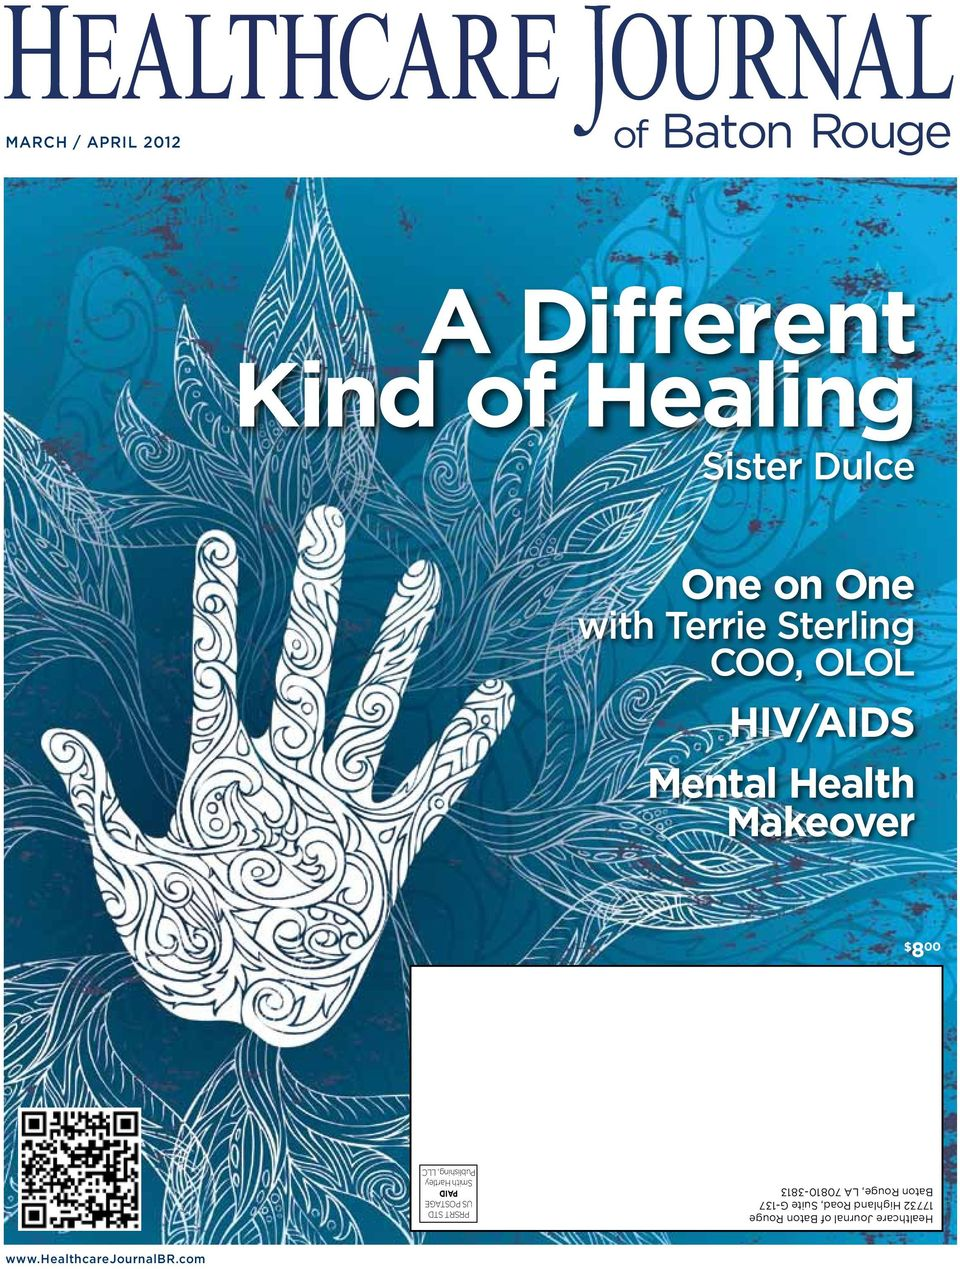 Healthcare Journal of Baton Rouge 17732 Highland Road, Suite G-137 Baton Rouge, LA